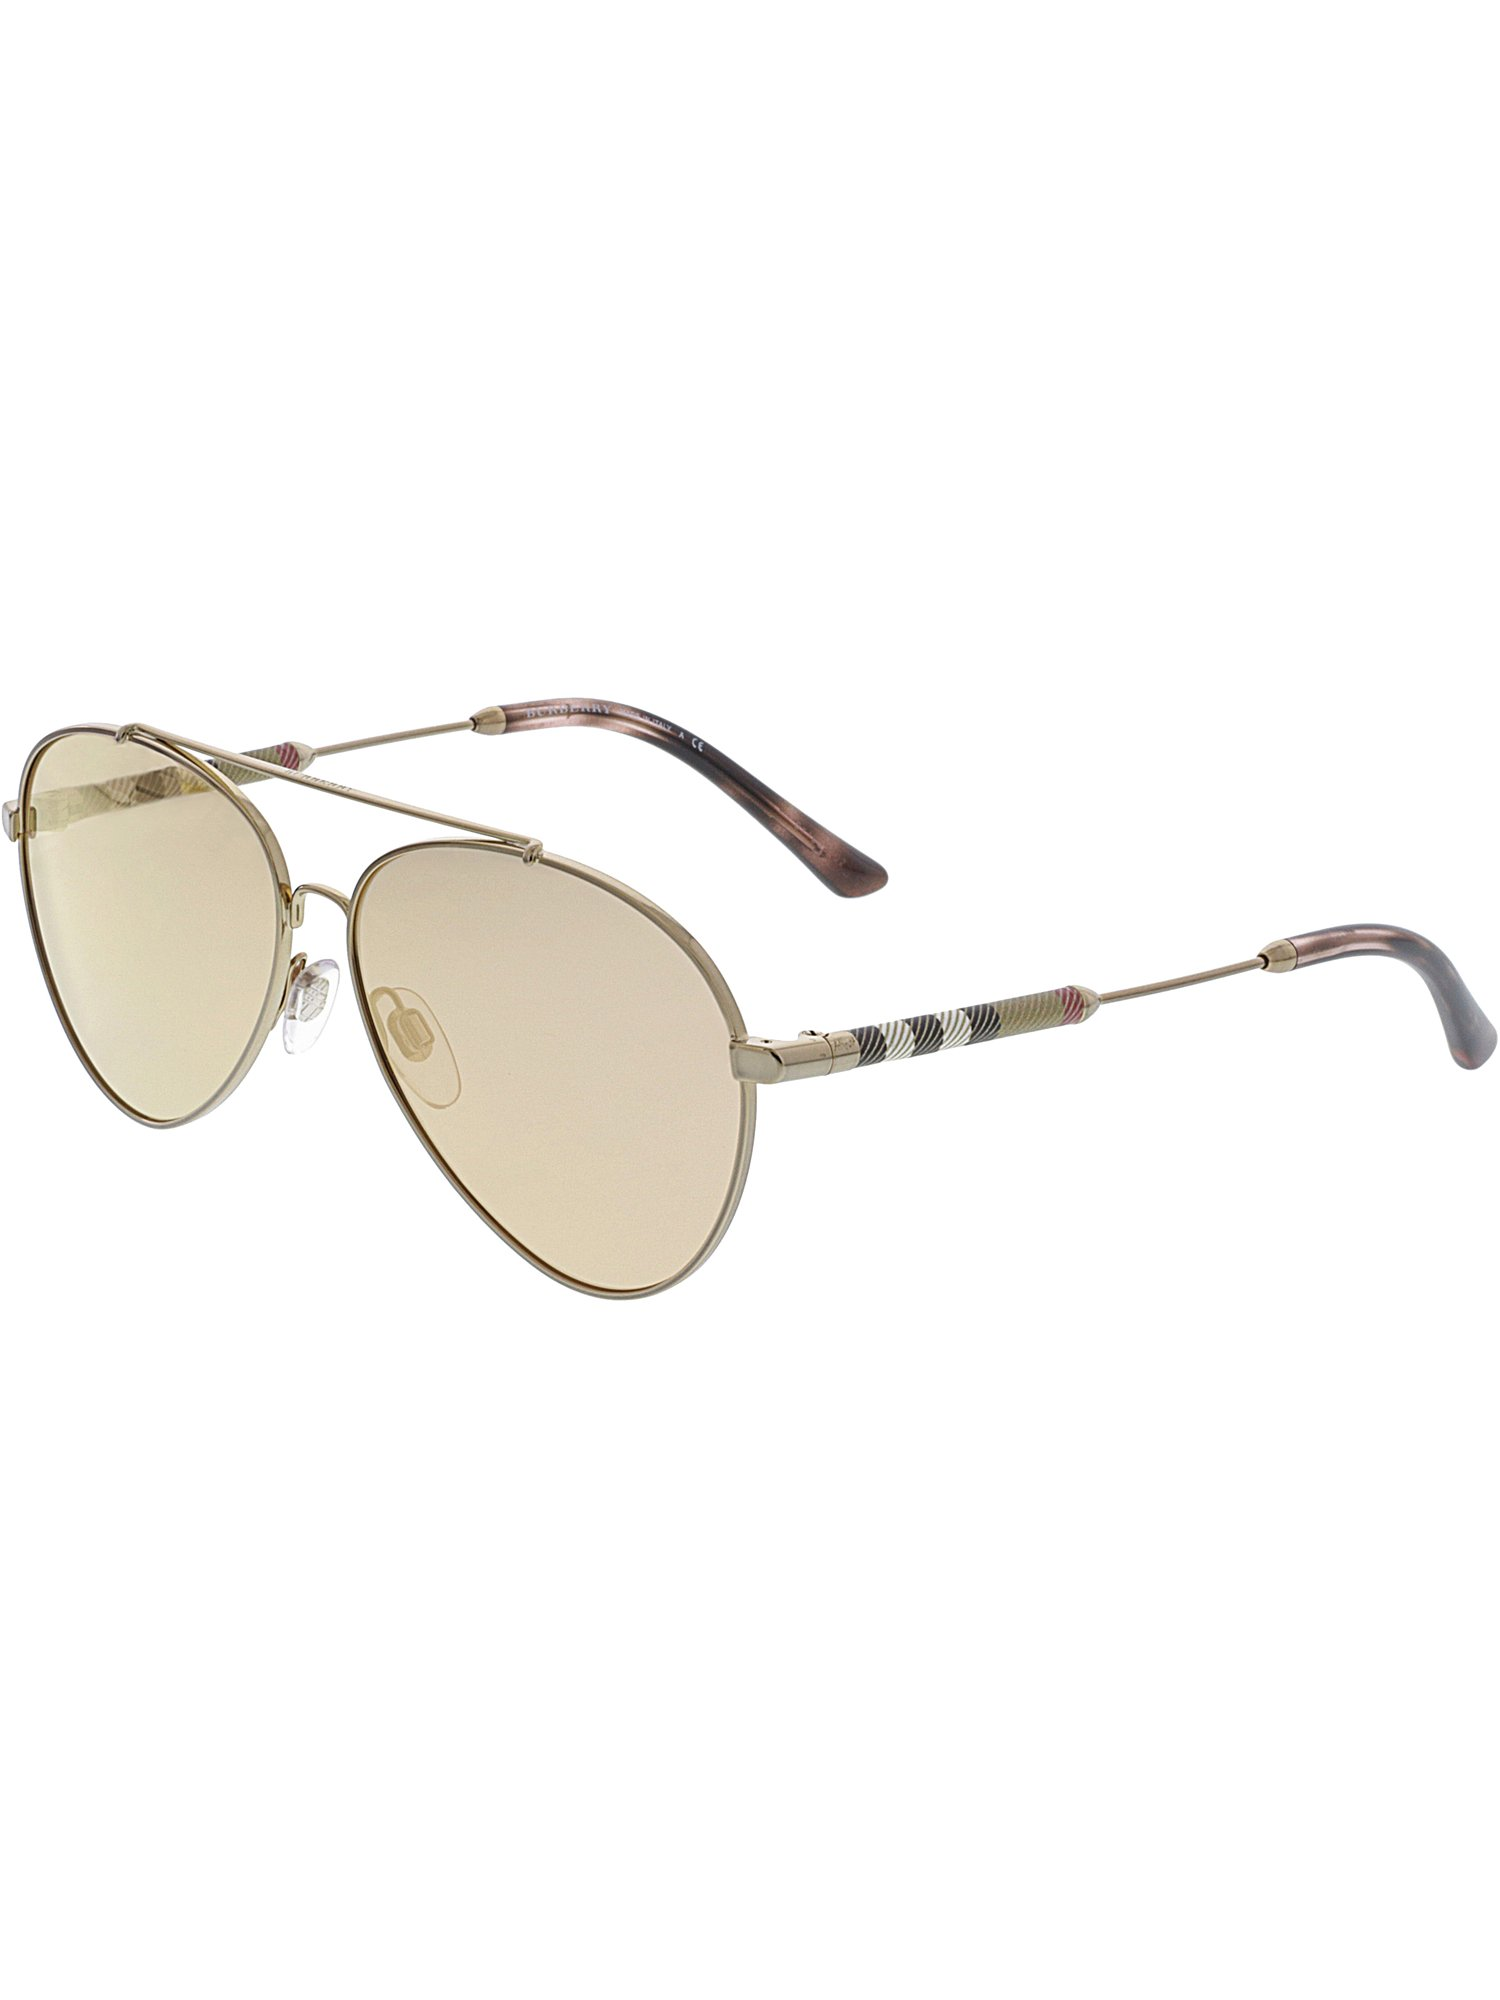 deab18c6cd3e Burberry - Burberry Women's Mirrored BE3092Q-12437J-57 Pink Aviator  Sunglasses - Walmart.com